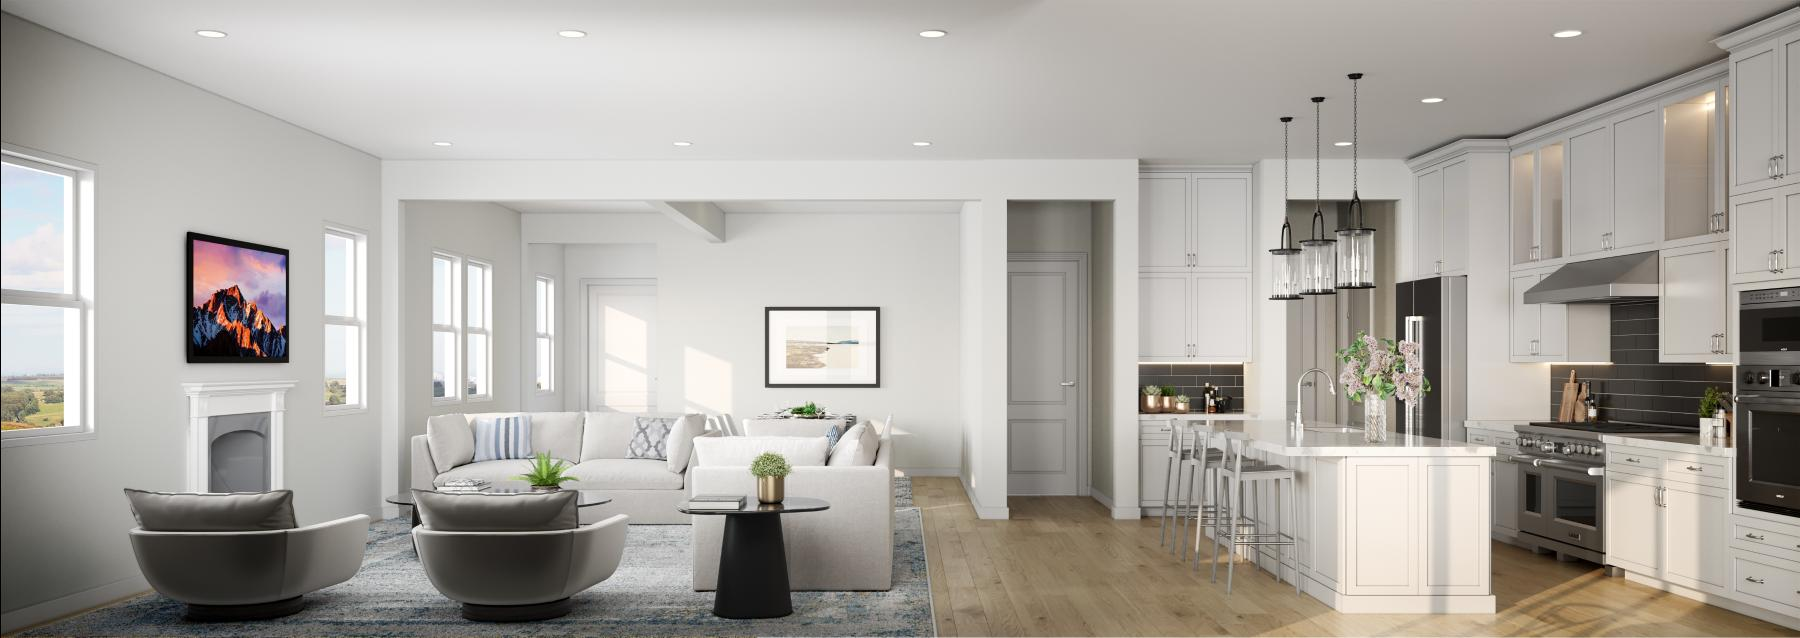 All home designs will feature a bright, open floor plan, ideal for entertaining